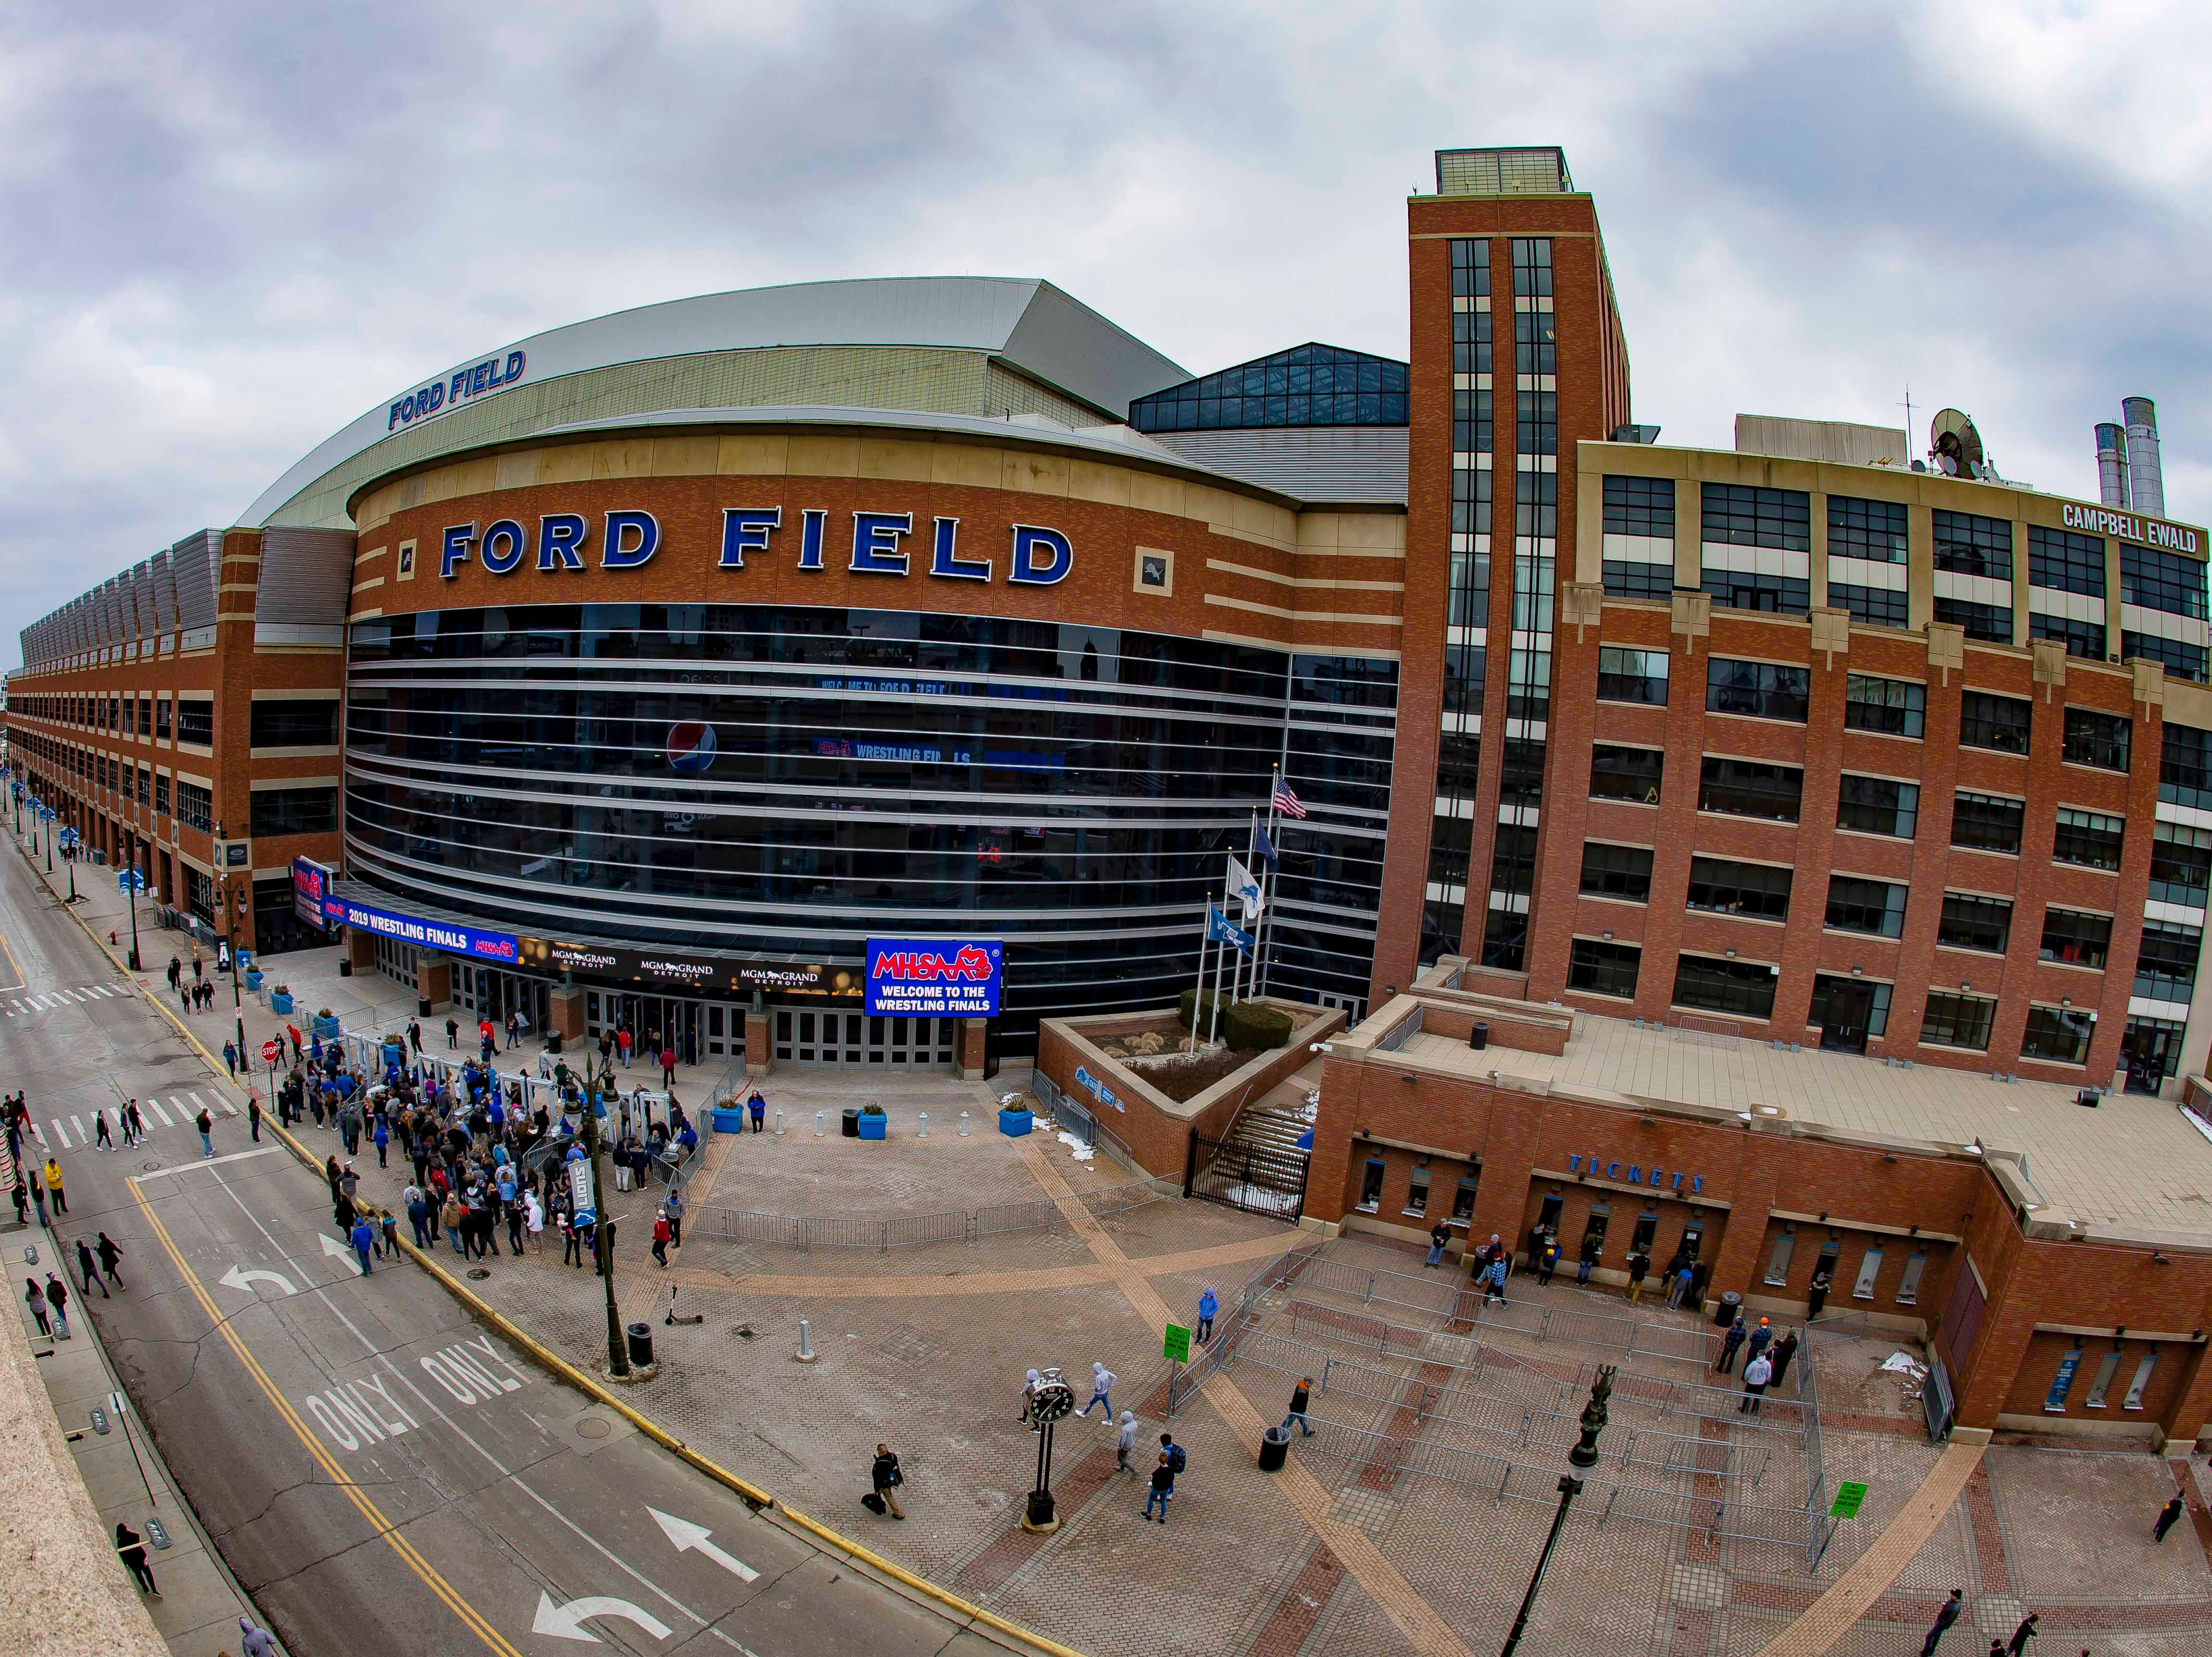 A wide view of the front entrance of Ford Field during the MHSAA Individual Wrestling Finals-Day 2 on Saturday, March 2, 2019 in Detroit, Michigan.